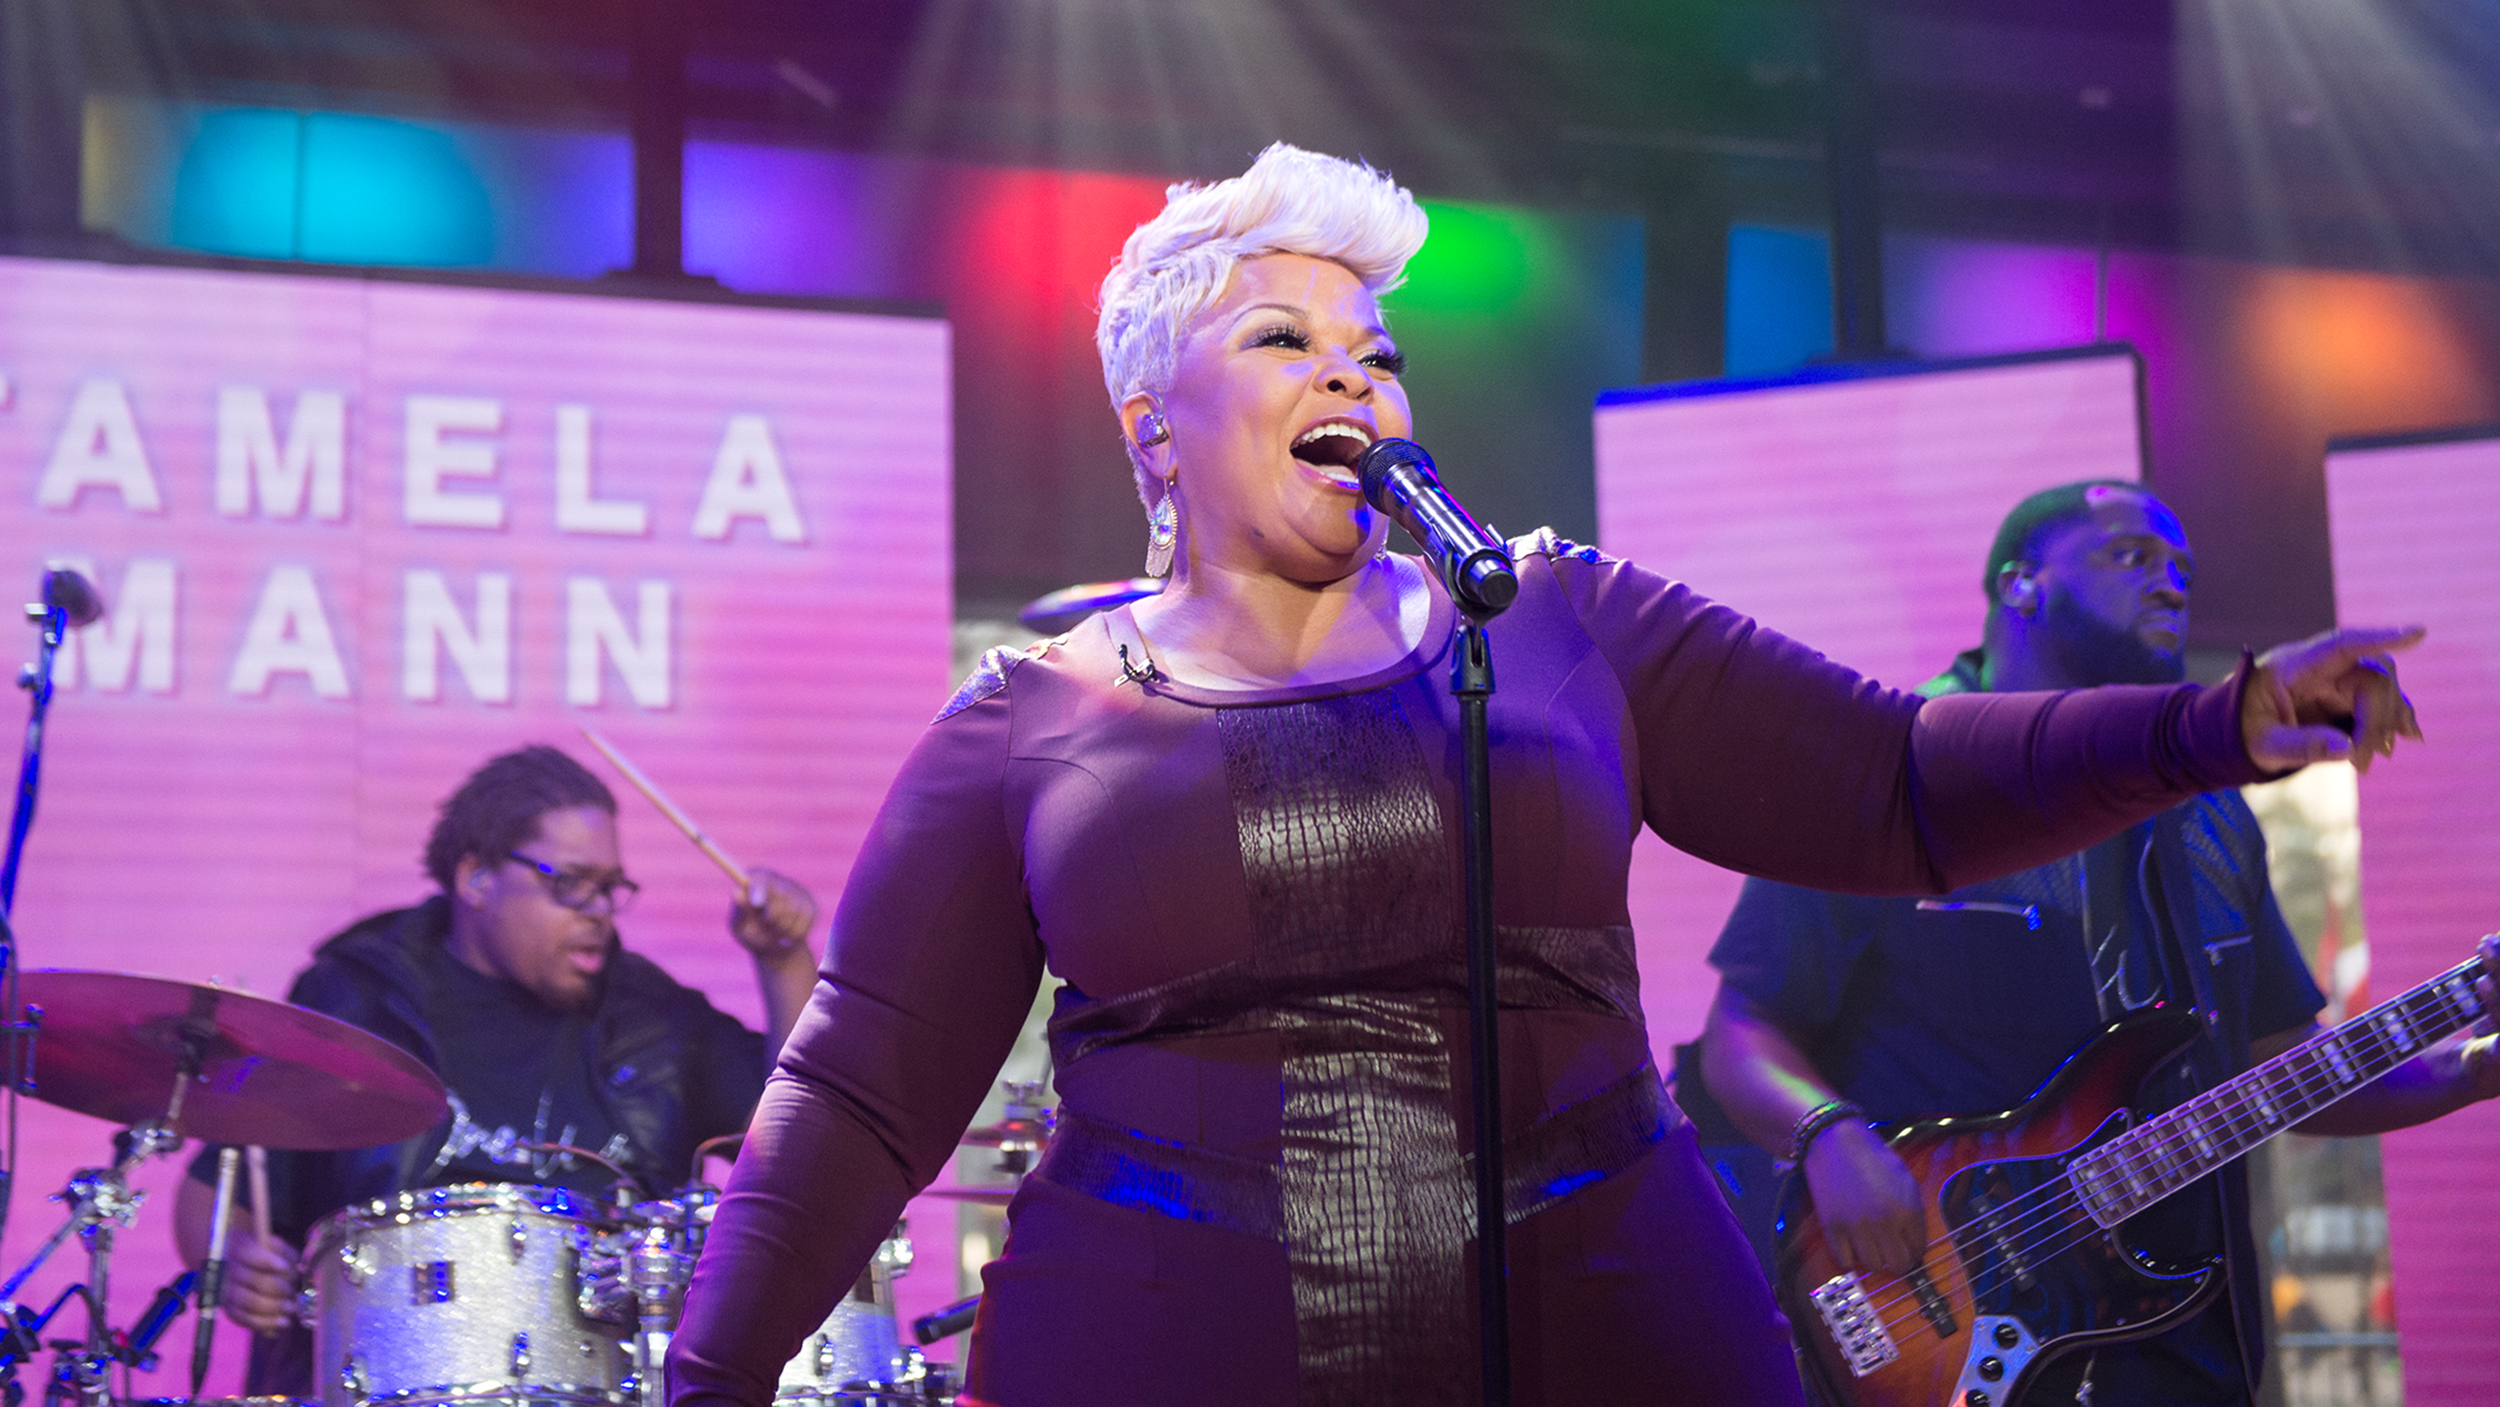 Tamela Mann was vibrant in champagne sparkles.